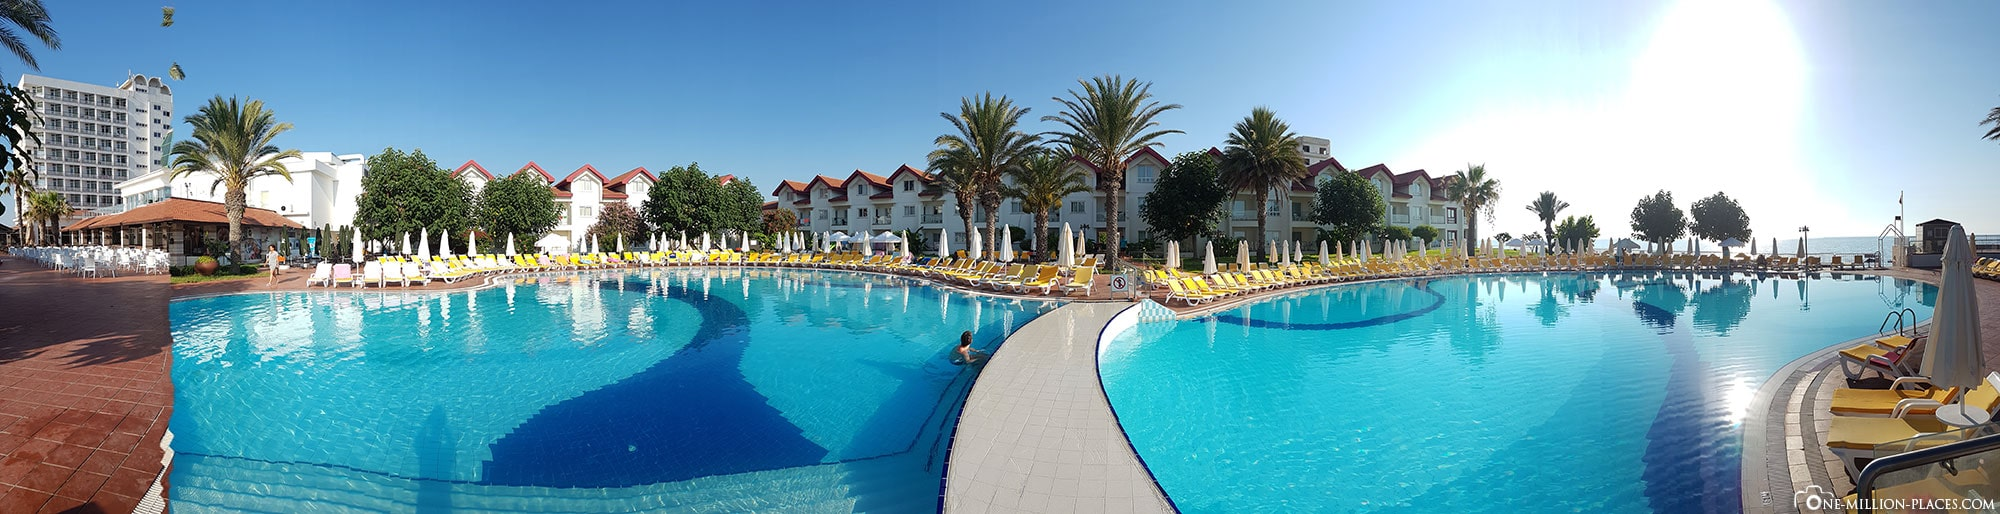 Pool, Salamis Bay Conti Resort, Famagusta, Cyprus, Northern Cyprus, Experiences, Travel Report